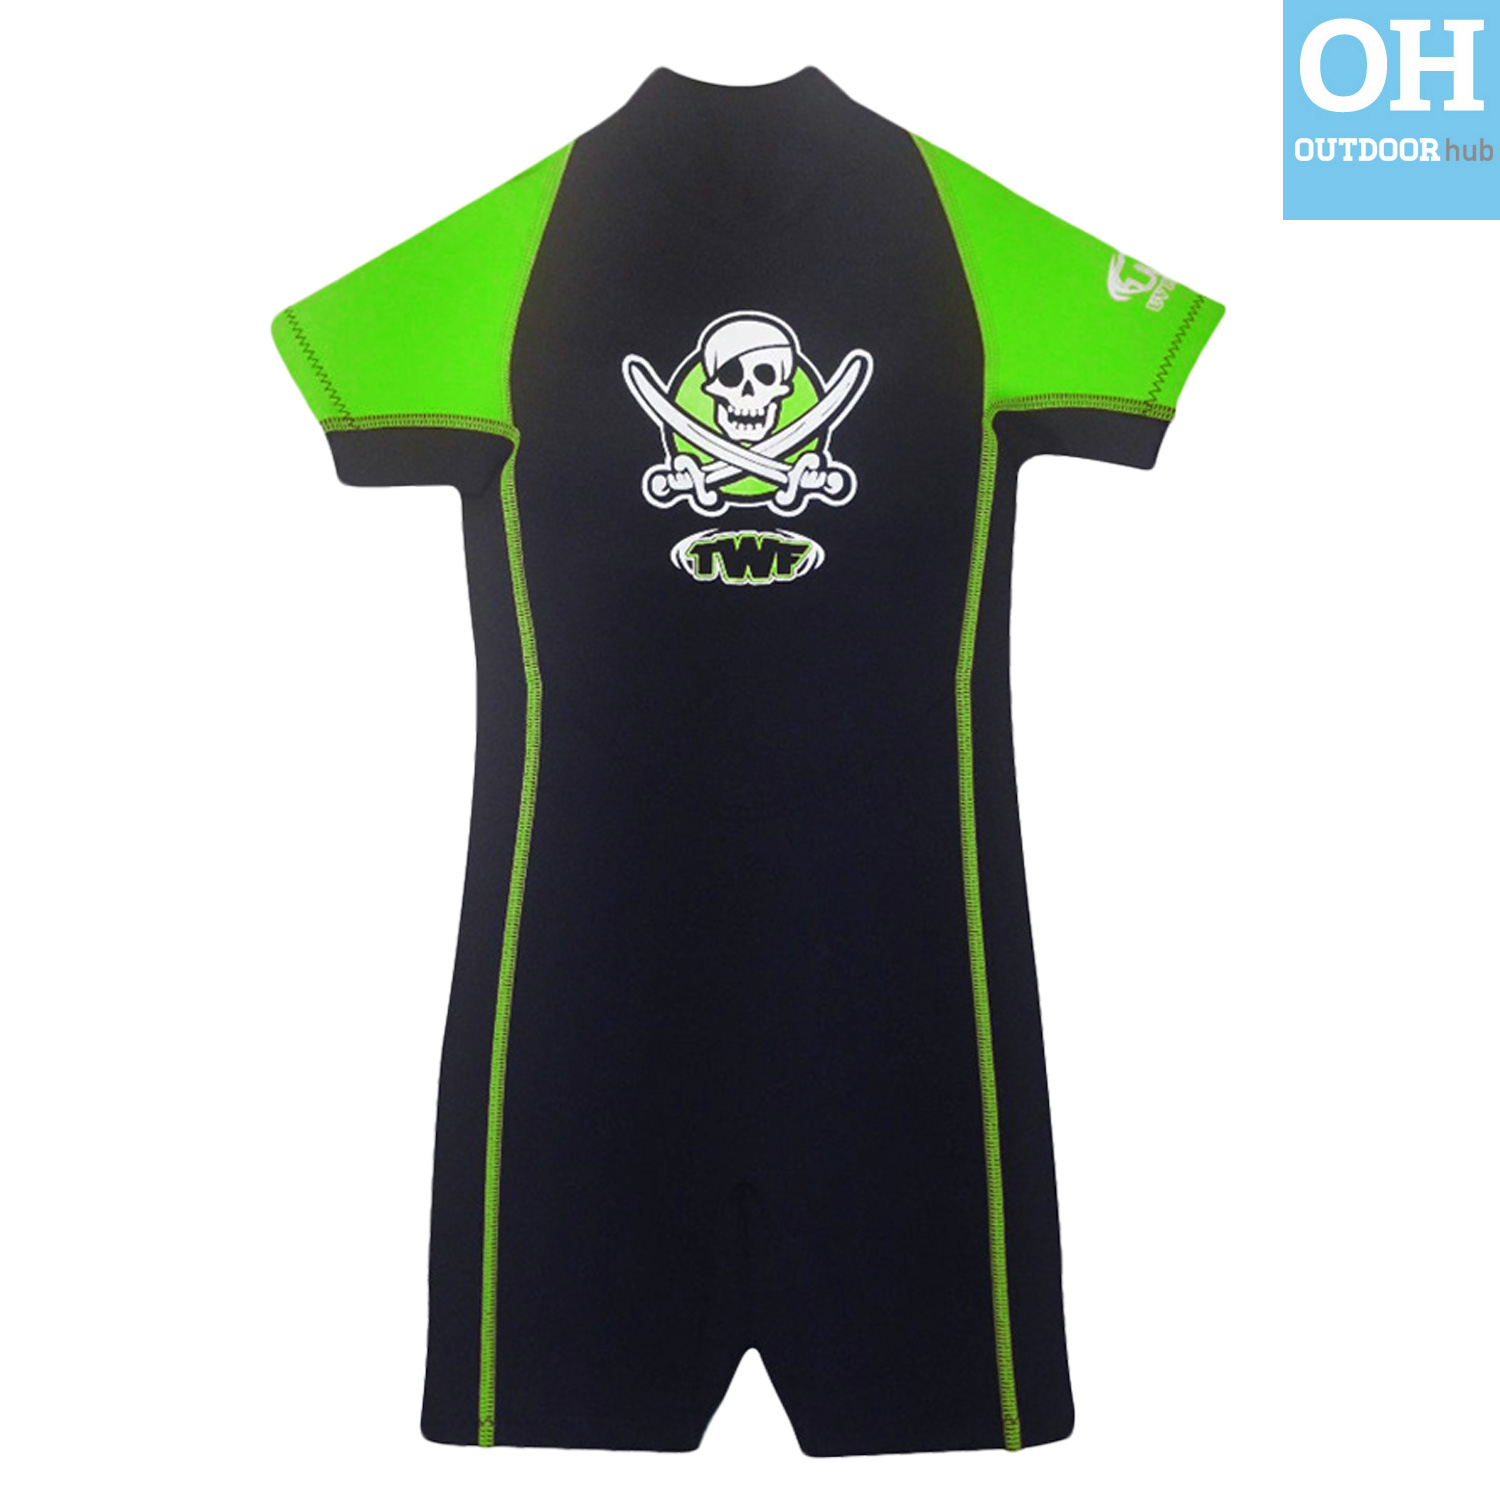 TWF-2mm-Kids-Shortie-Wetsuit-Childs-Shorty-Boys-Girls-Beach-Swim-Baby-Toddler thumbnail 11